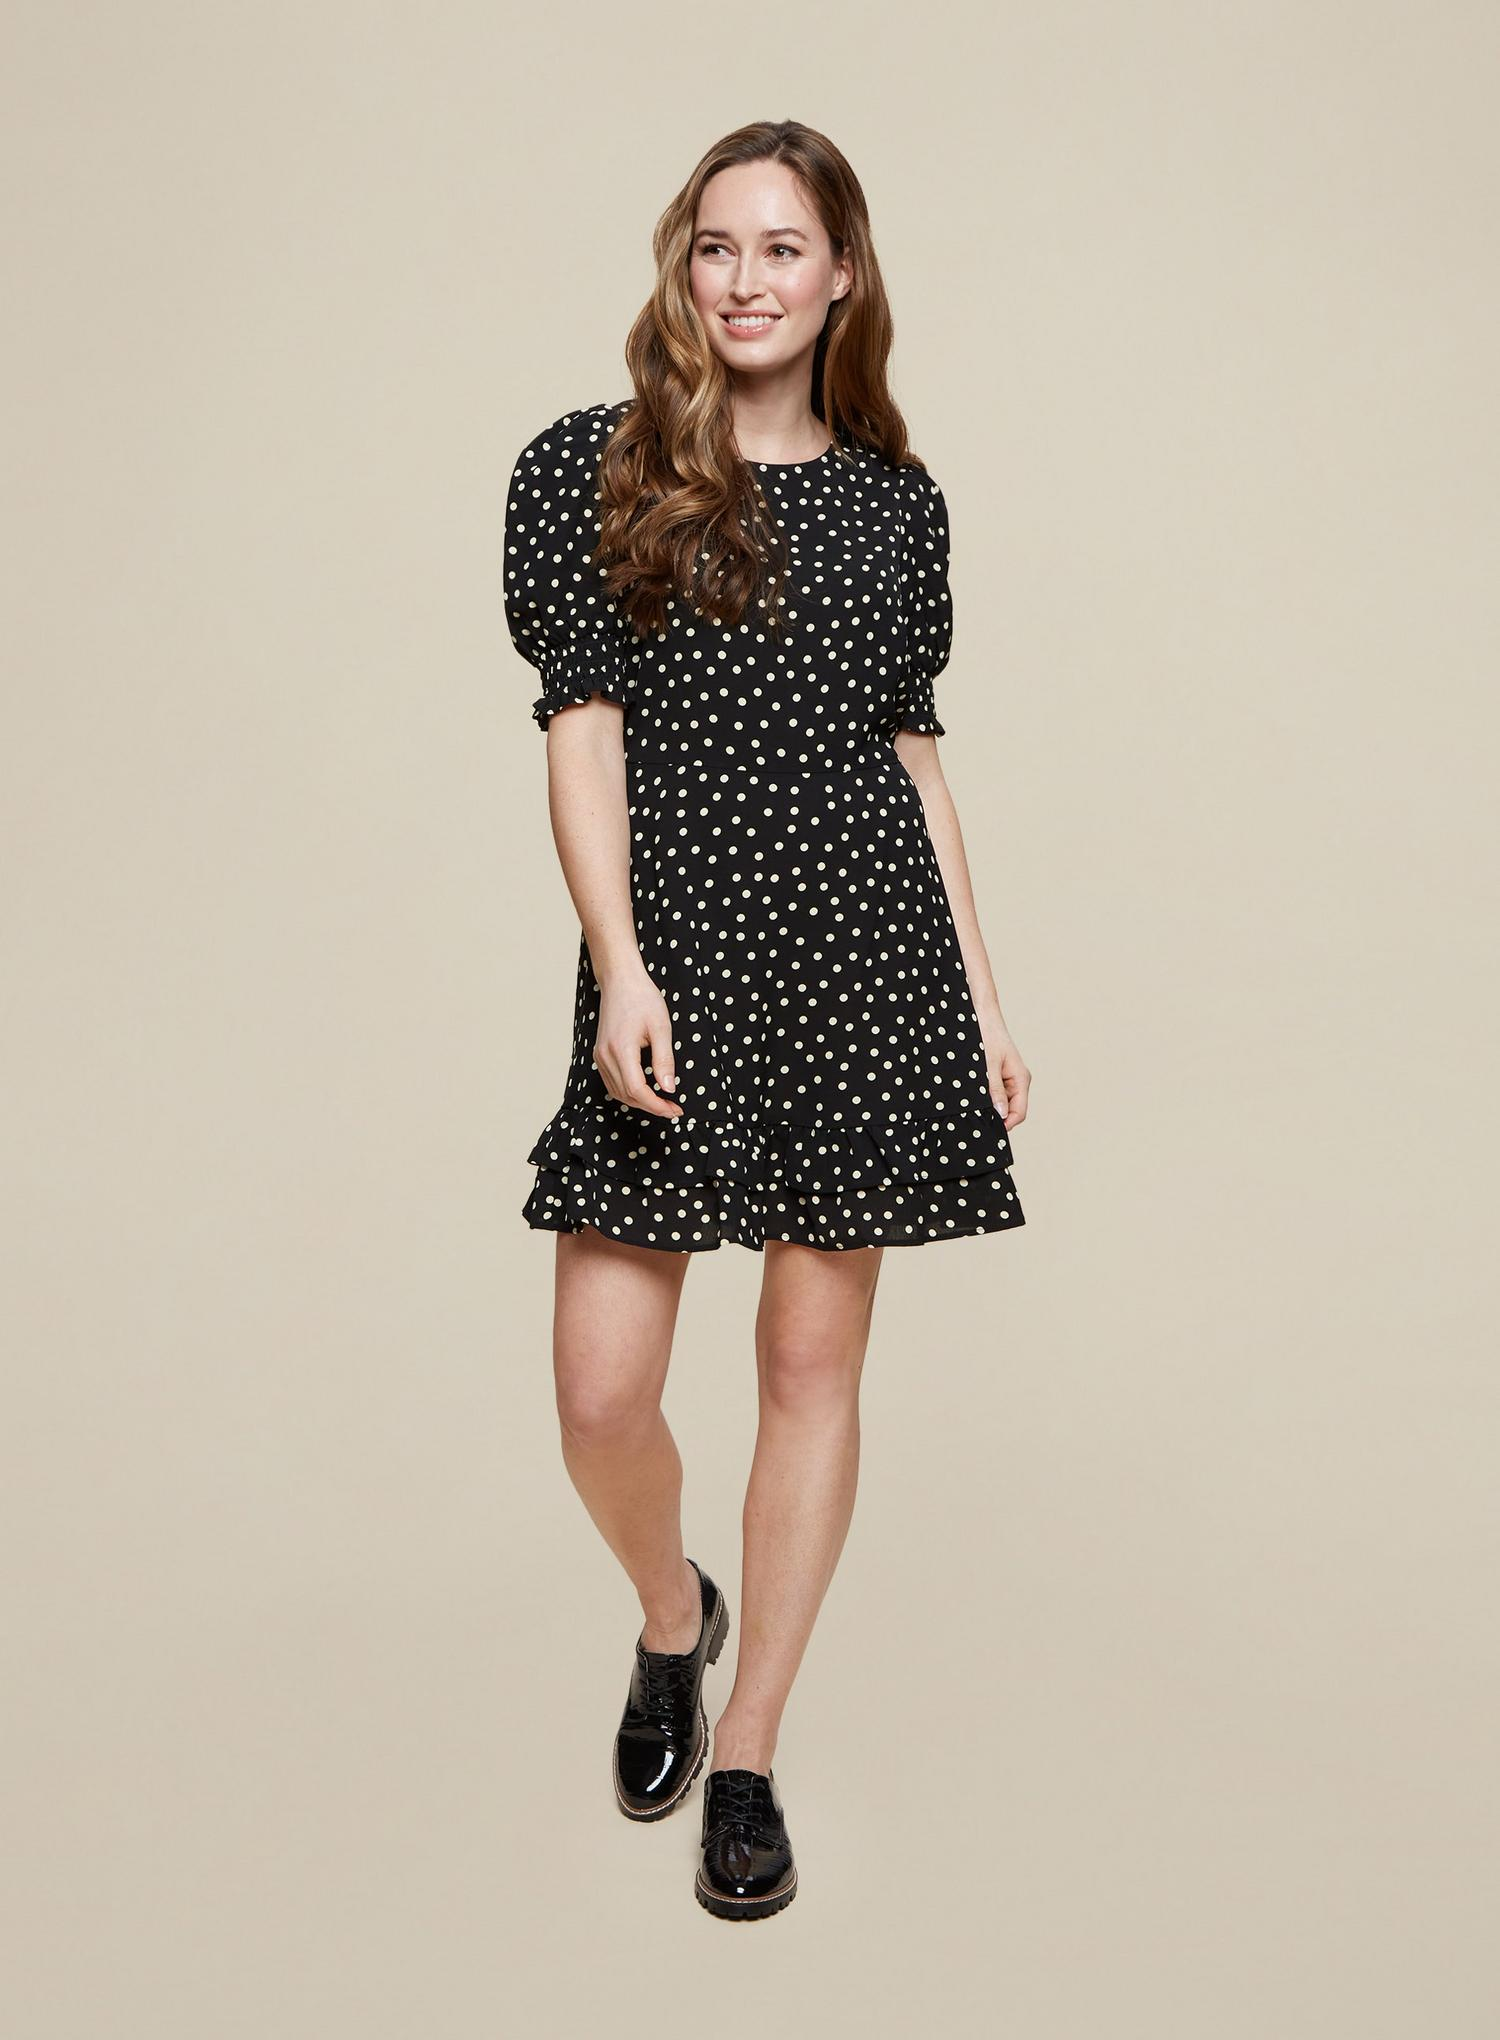 105 Black Spot Print Frill Hem Mini Dress image number 3